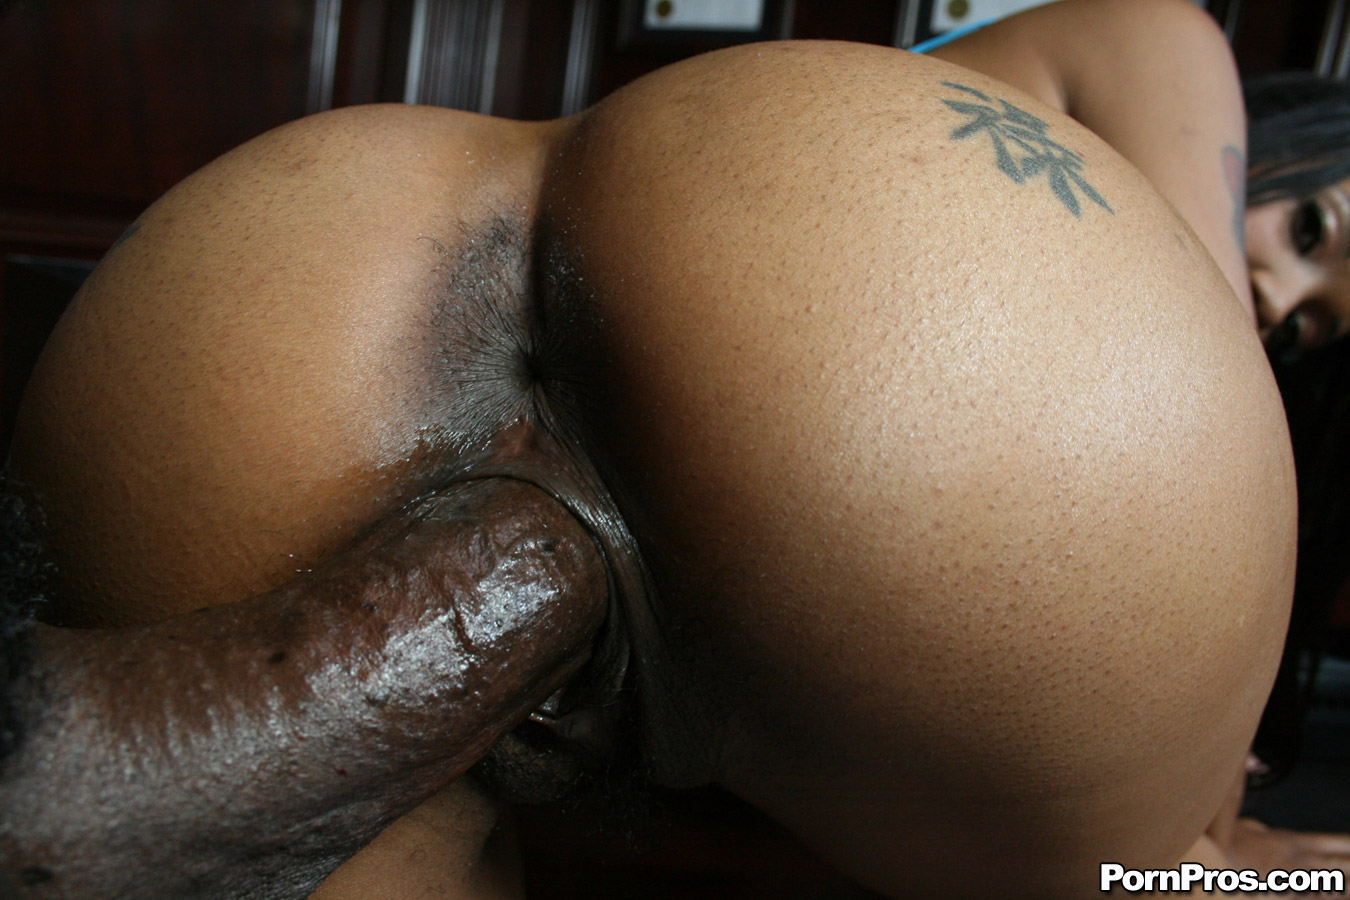 Big pussy fat ass ebony sex seems